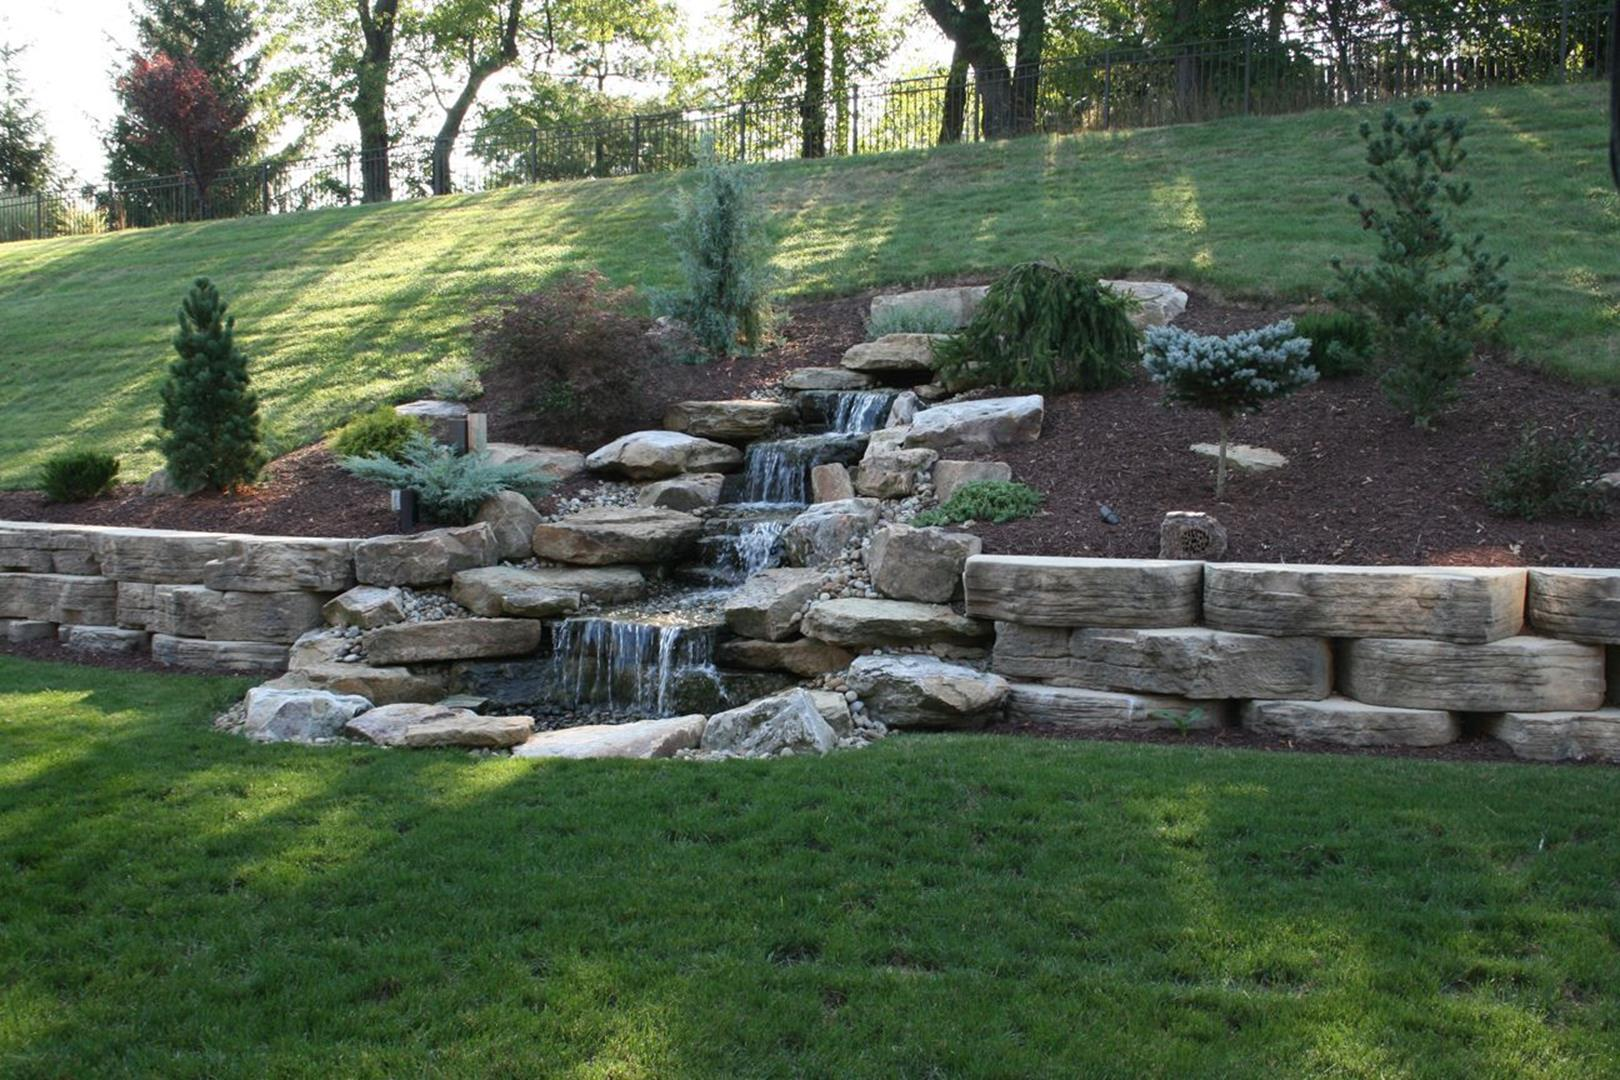 Economic Pond Retaining Wall Ideas 4 - DecoRelated on Back Wall Garden Ideas id=16344